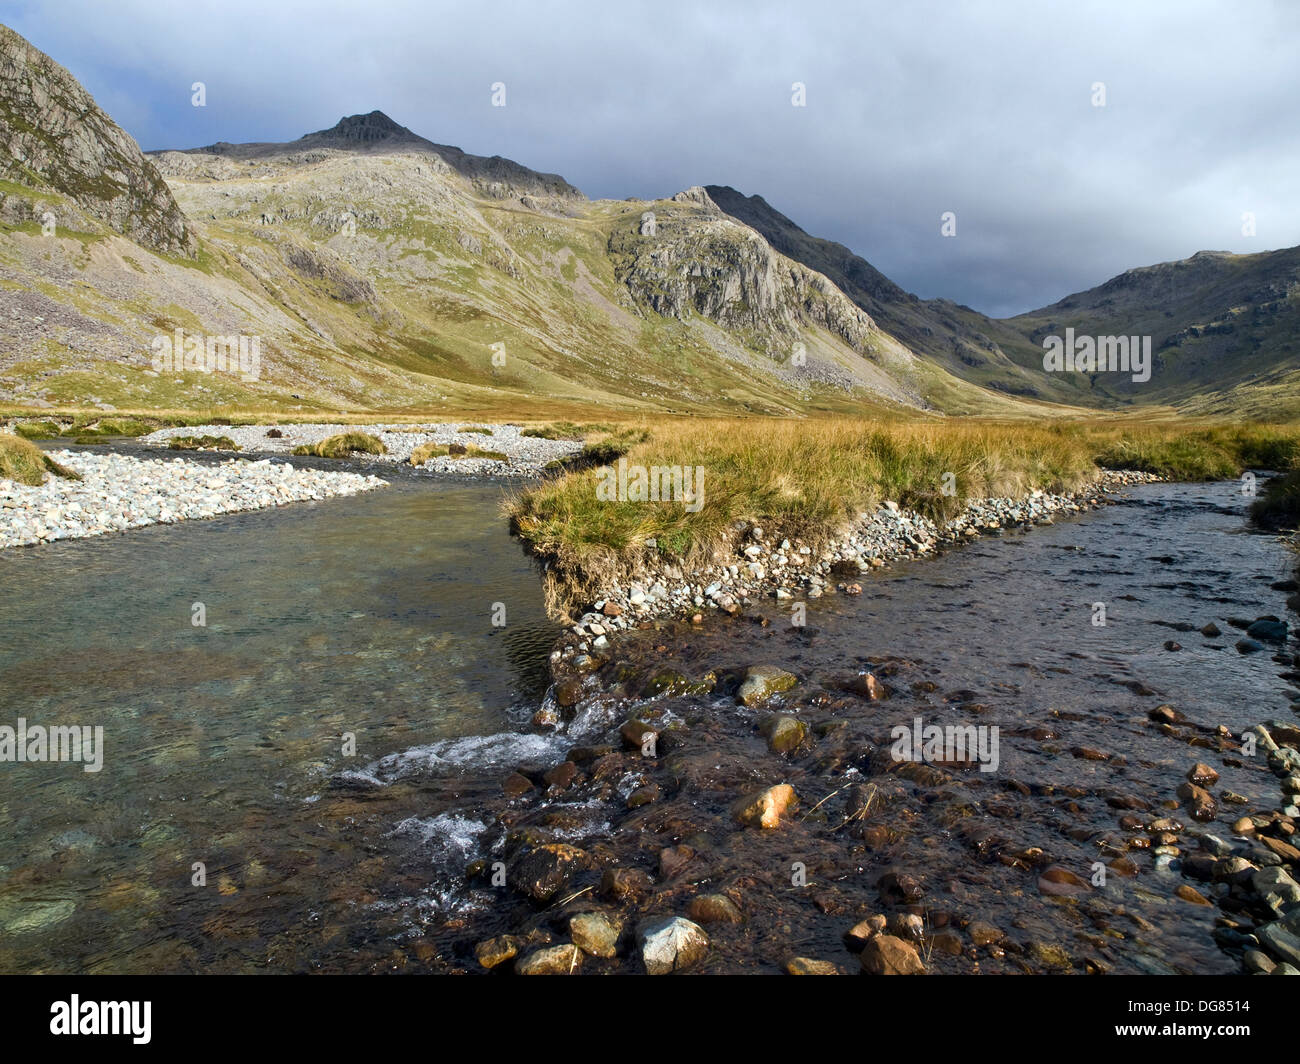 River Esk on Great Moss in Upper Eskdale in the Lake District mountains, Cumbria UK - Stock Image